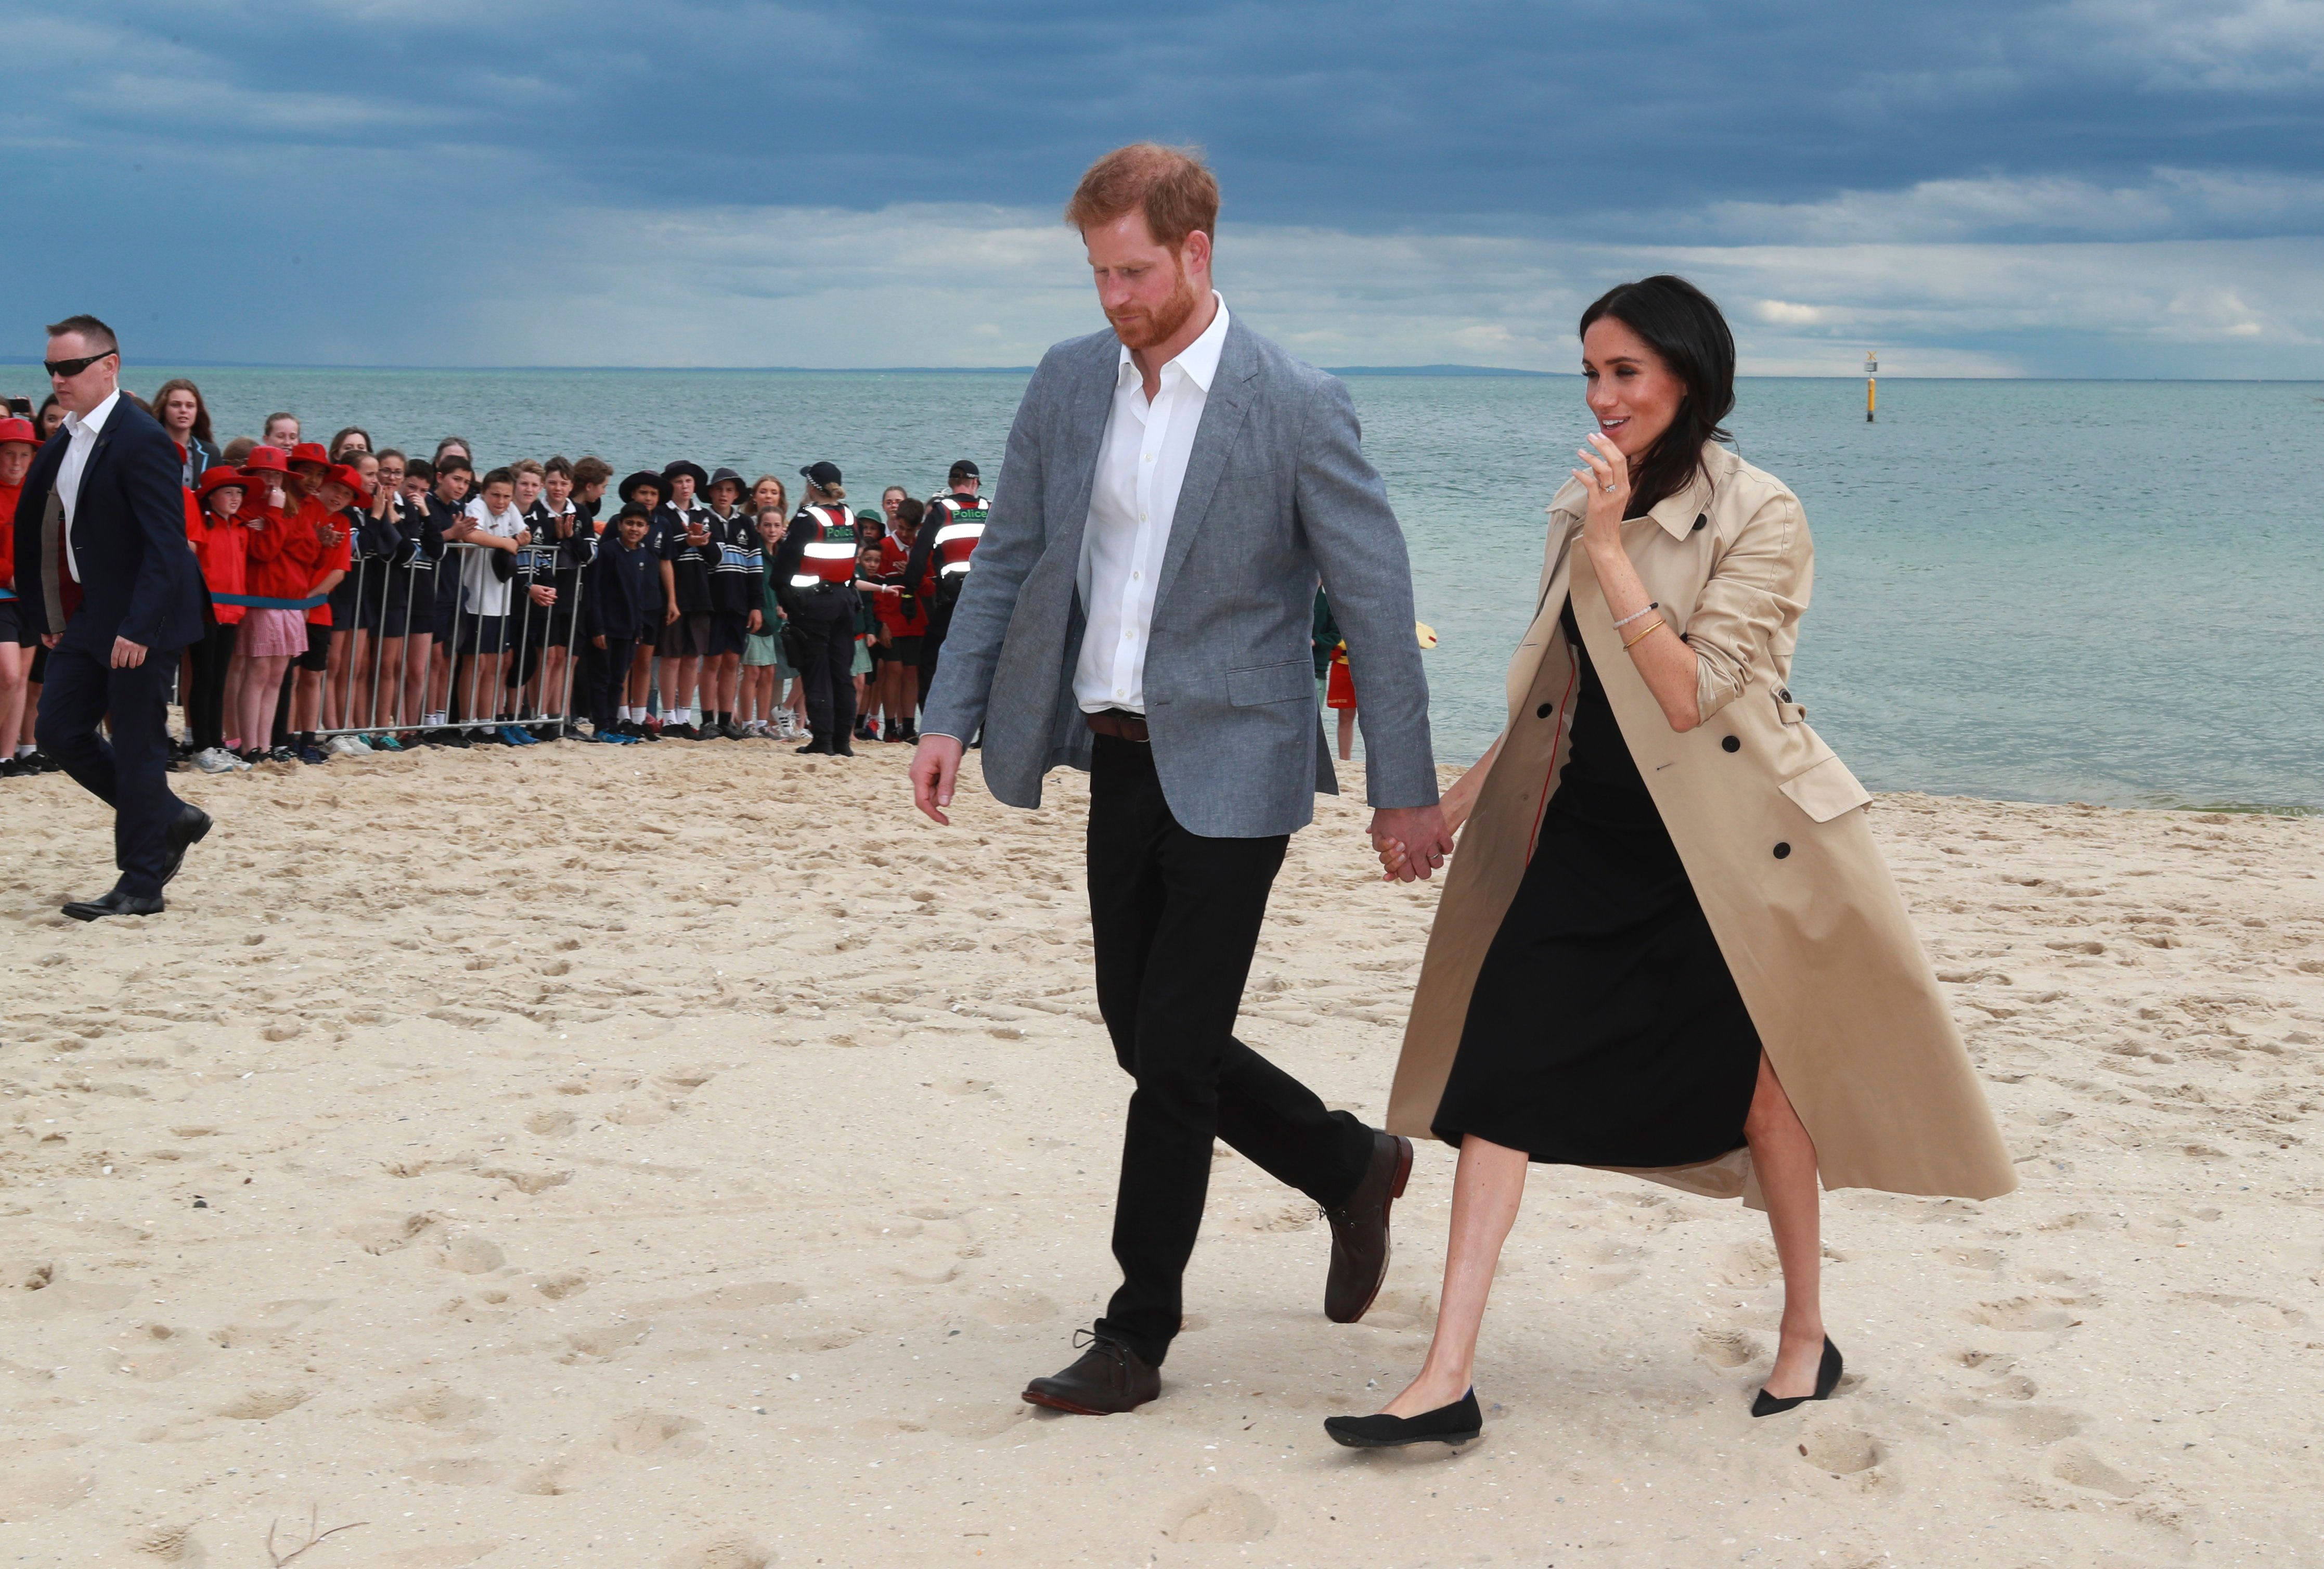 Britain's Prince Harry and Meghan, Duchess of Sussex walk across the sand at South Melbourne Beach in Melbourne, Australia, Thursday, Oct. 18, 2018. Prince Harry and his wife Meghan are on day two of their 16-day tour of Australia and the South Pacific. (Ian Vogler/Pool Photo via AP)